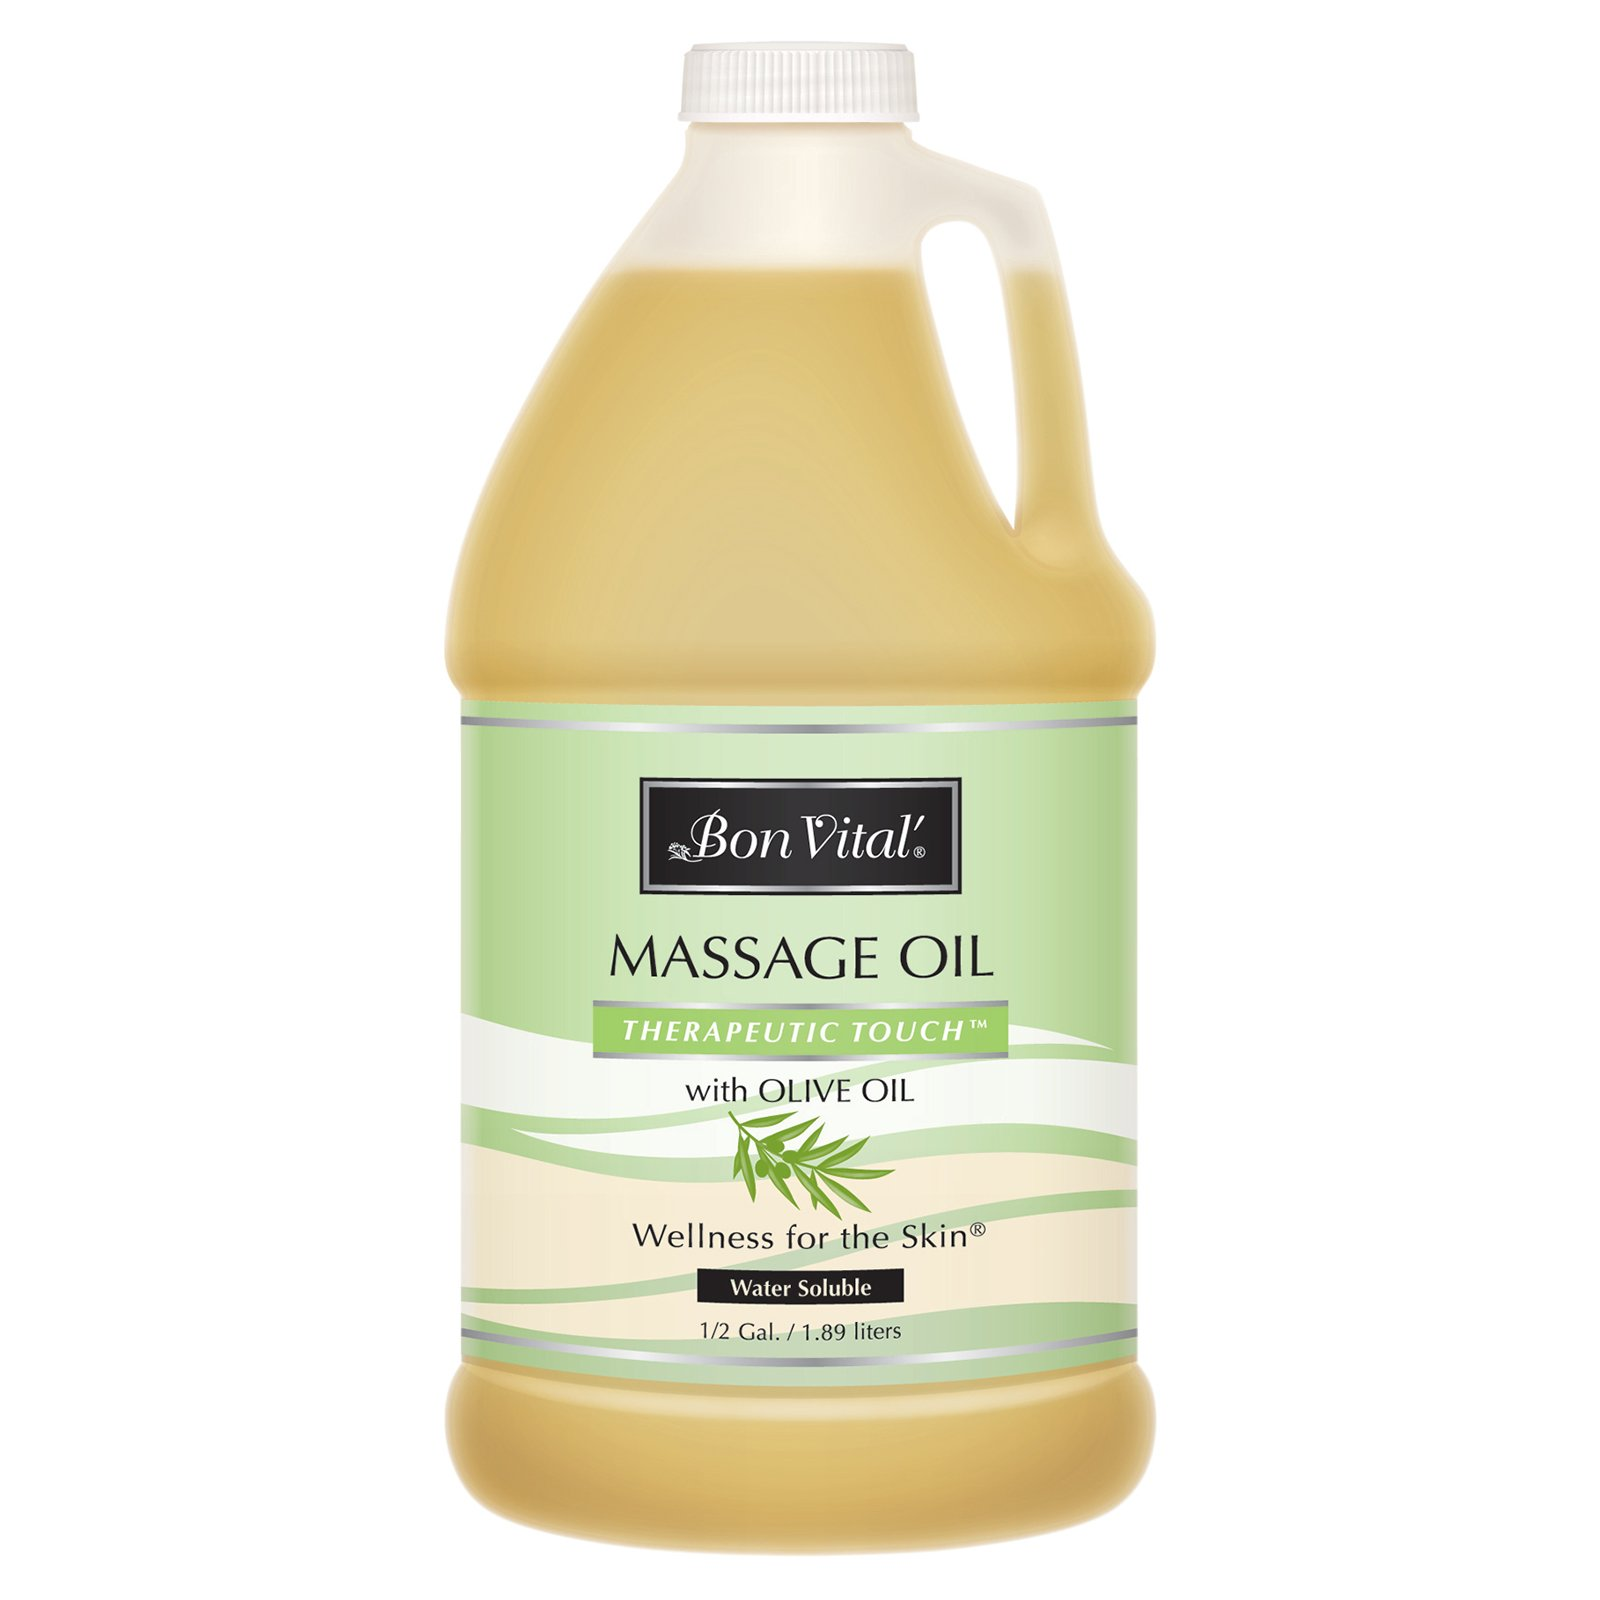 Bon Vital' Therapeutic Touch Massage Oil Made with Olive Oil to Repair Dry Skin & Soothe Sore Muscles, Lightweight Oil Perfect for Any Massage to Hydrate and Nourish Dry, Rough Skin, 1/2 Gallon Bottle